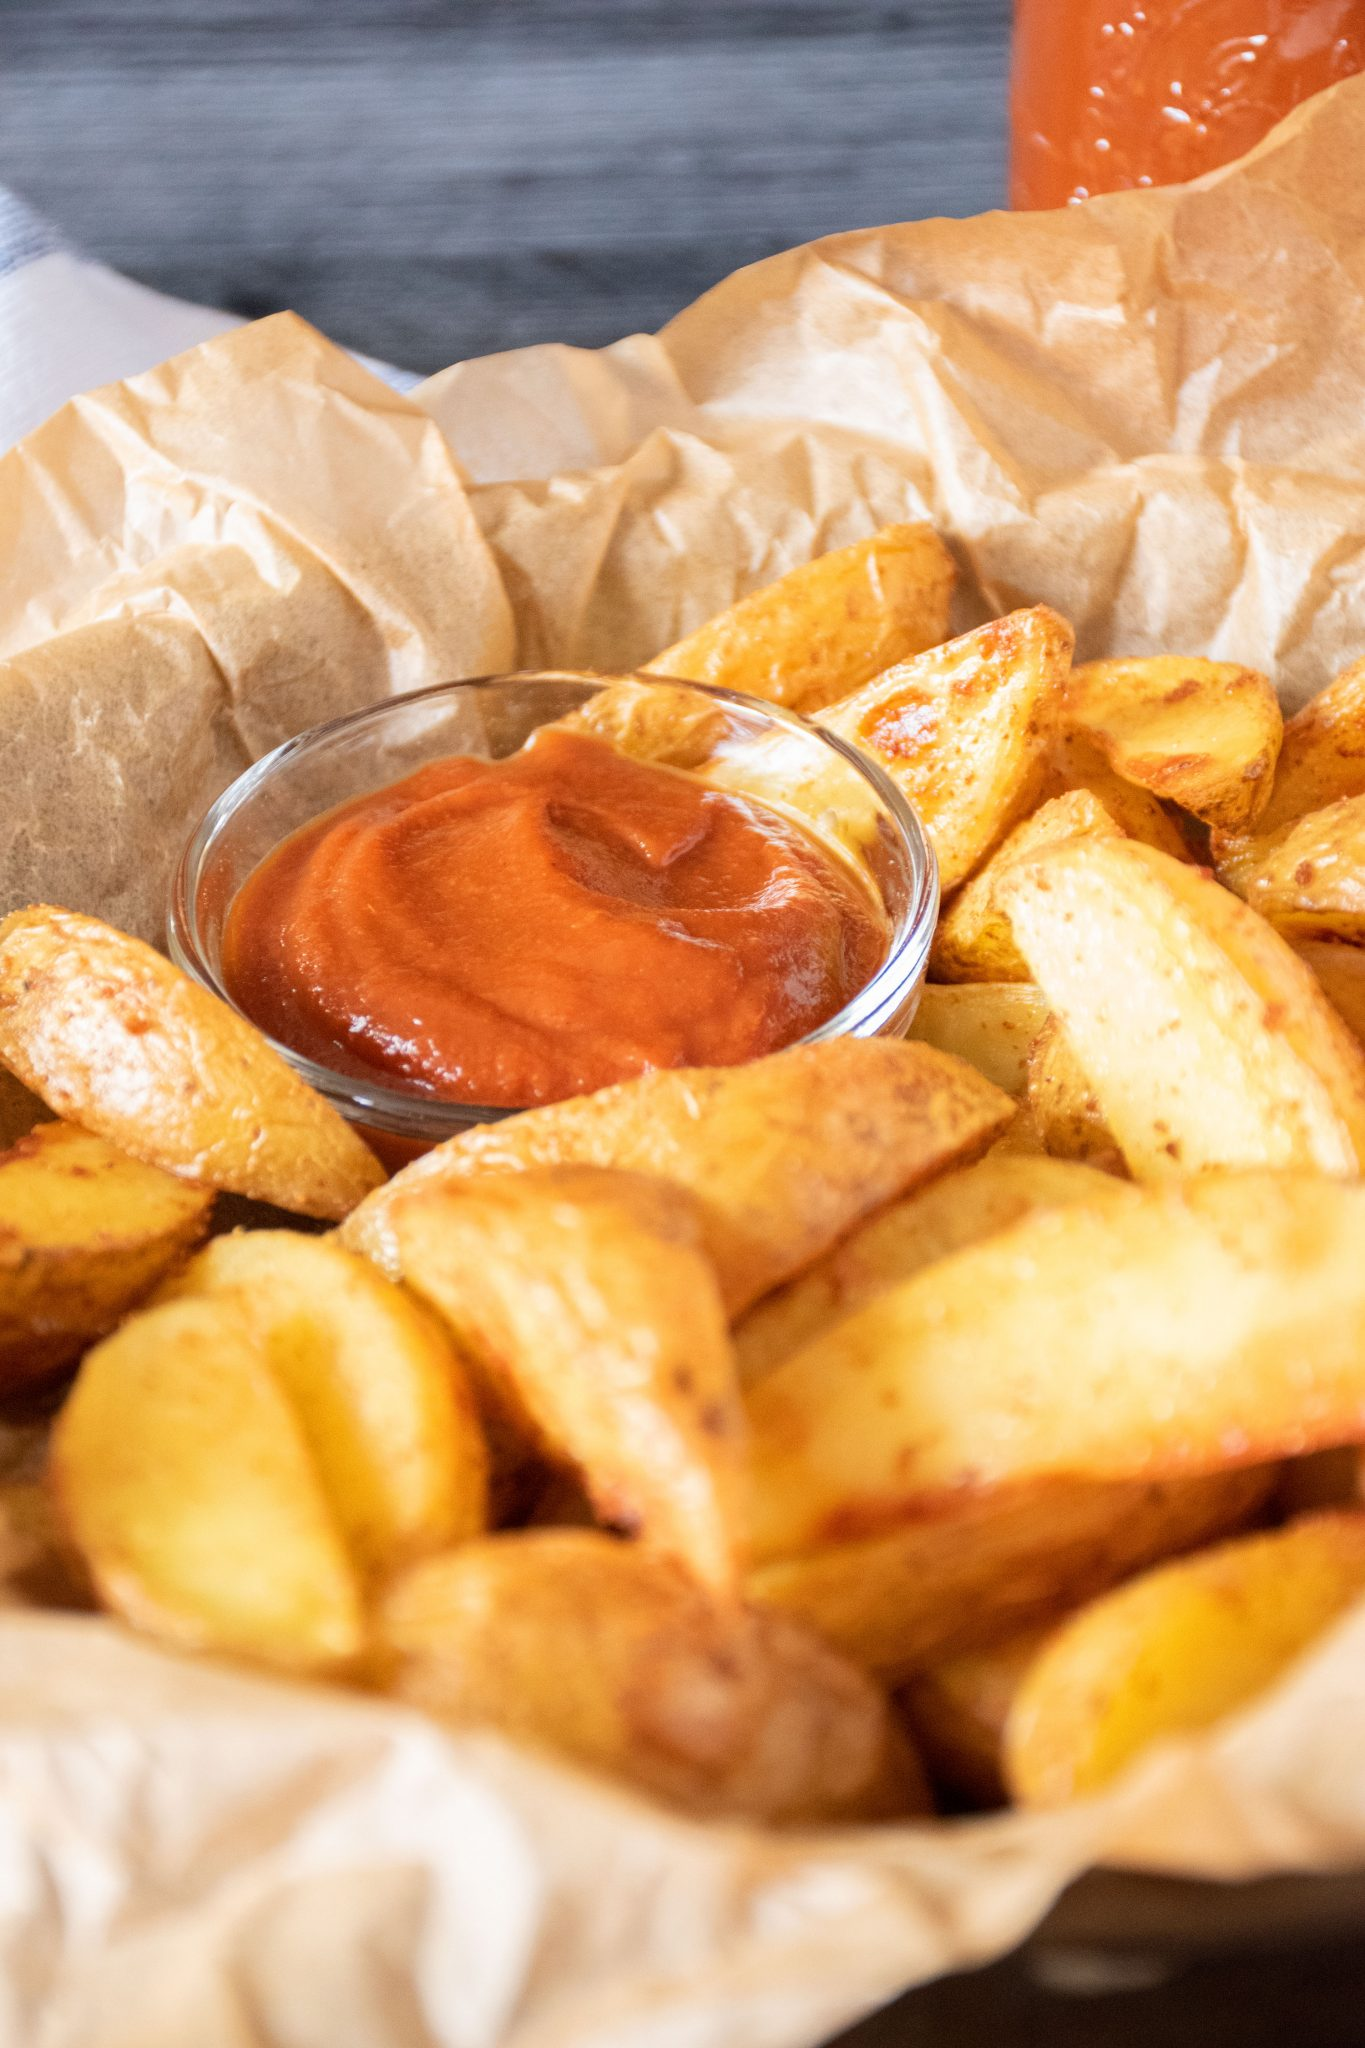 Basket of potato wedges with a small bowl of ketchup